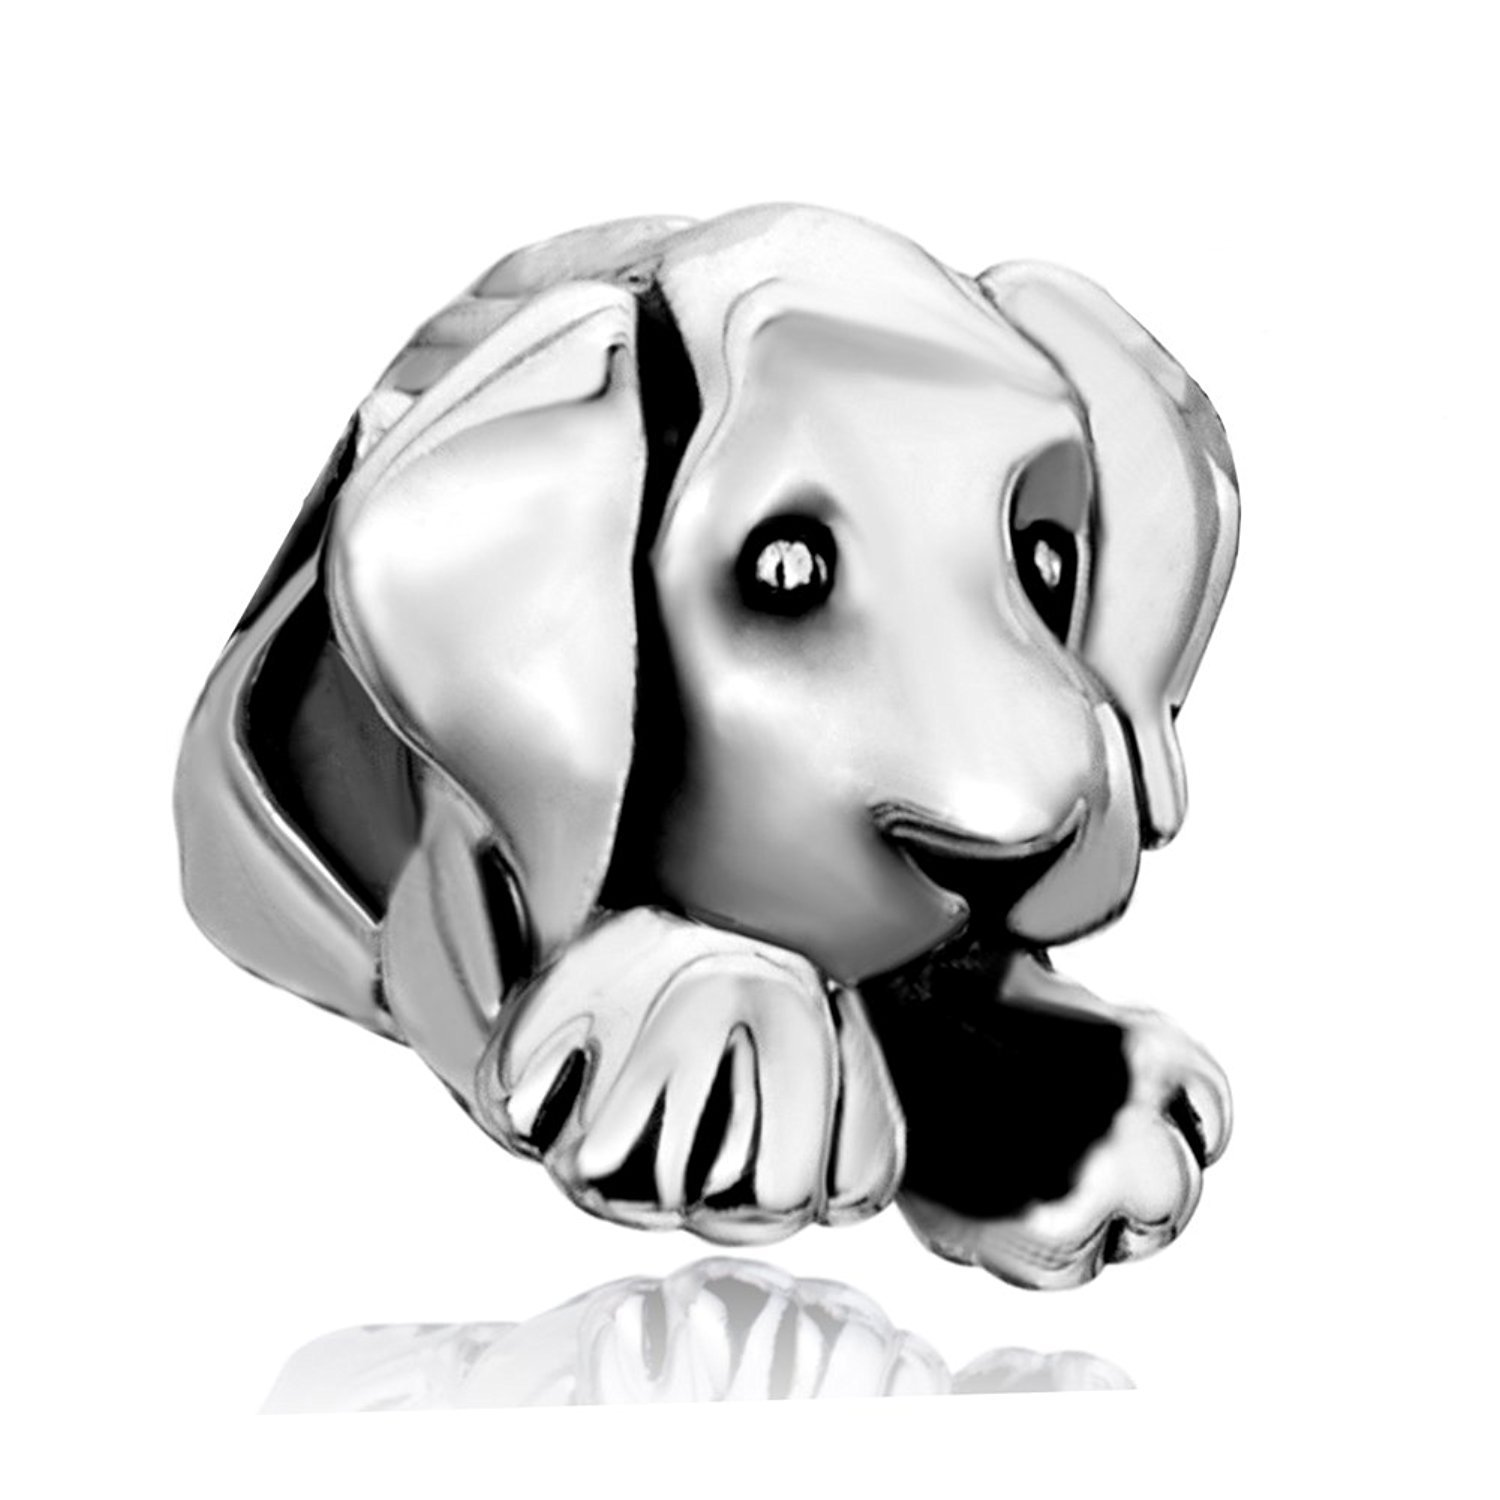 Everbling Cute Puppy I Love Dog Pet Lover25 Sterling Silver Bead Fits European Charm Bracelet (Cute Puppy)